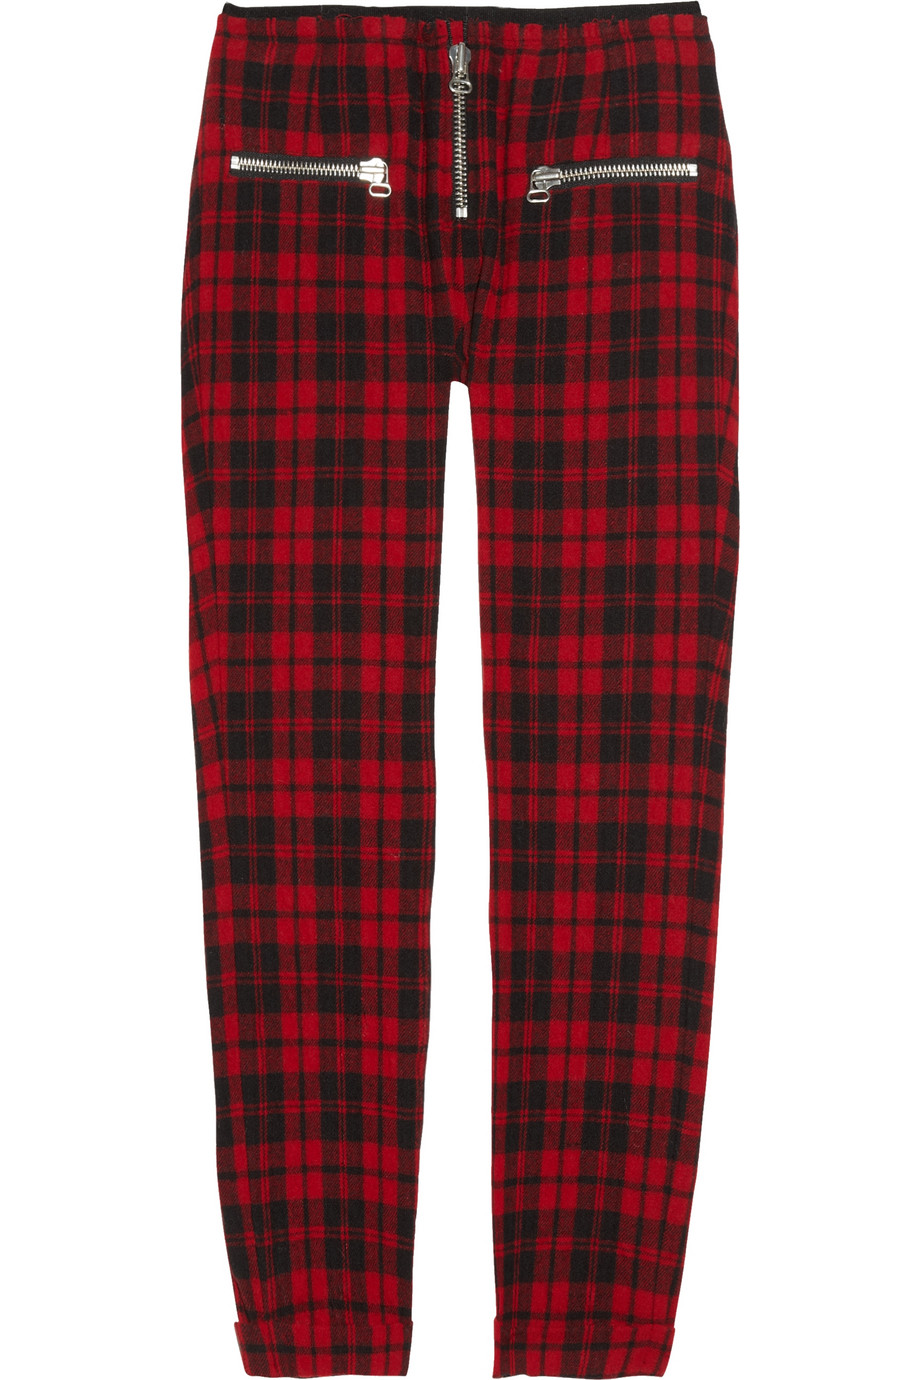 Étoile isabel marant Gary Cropped Tartan Woolblend Pants in Red | Lyst